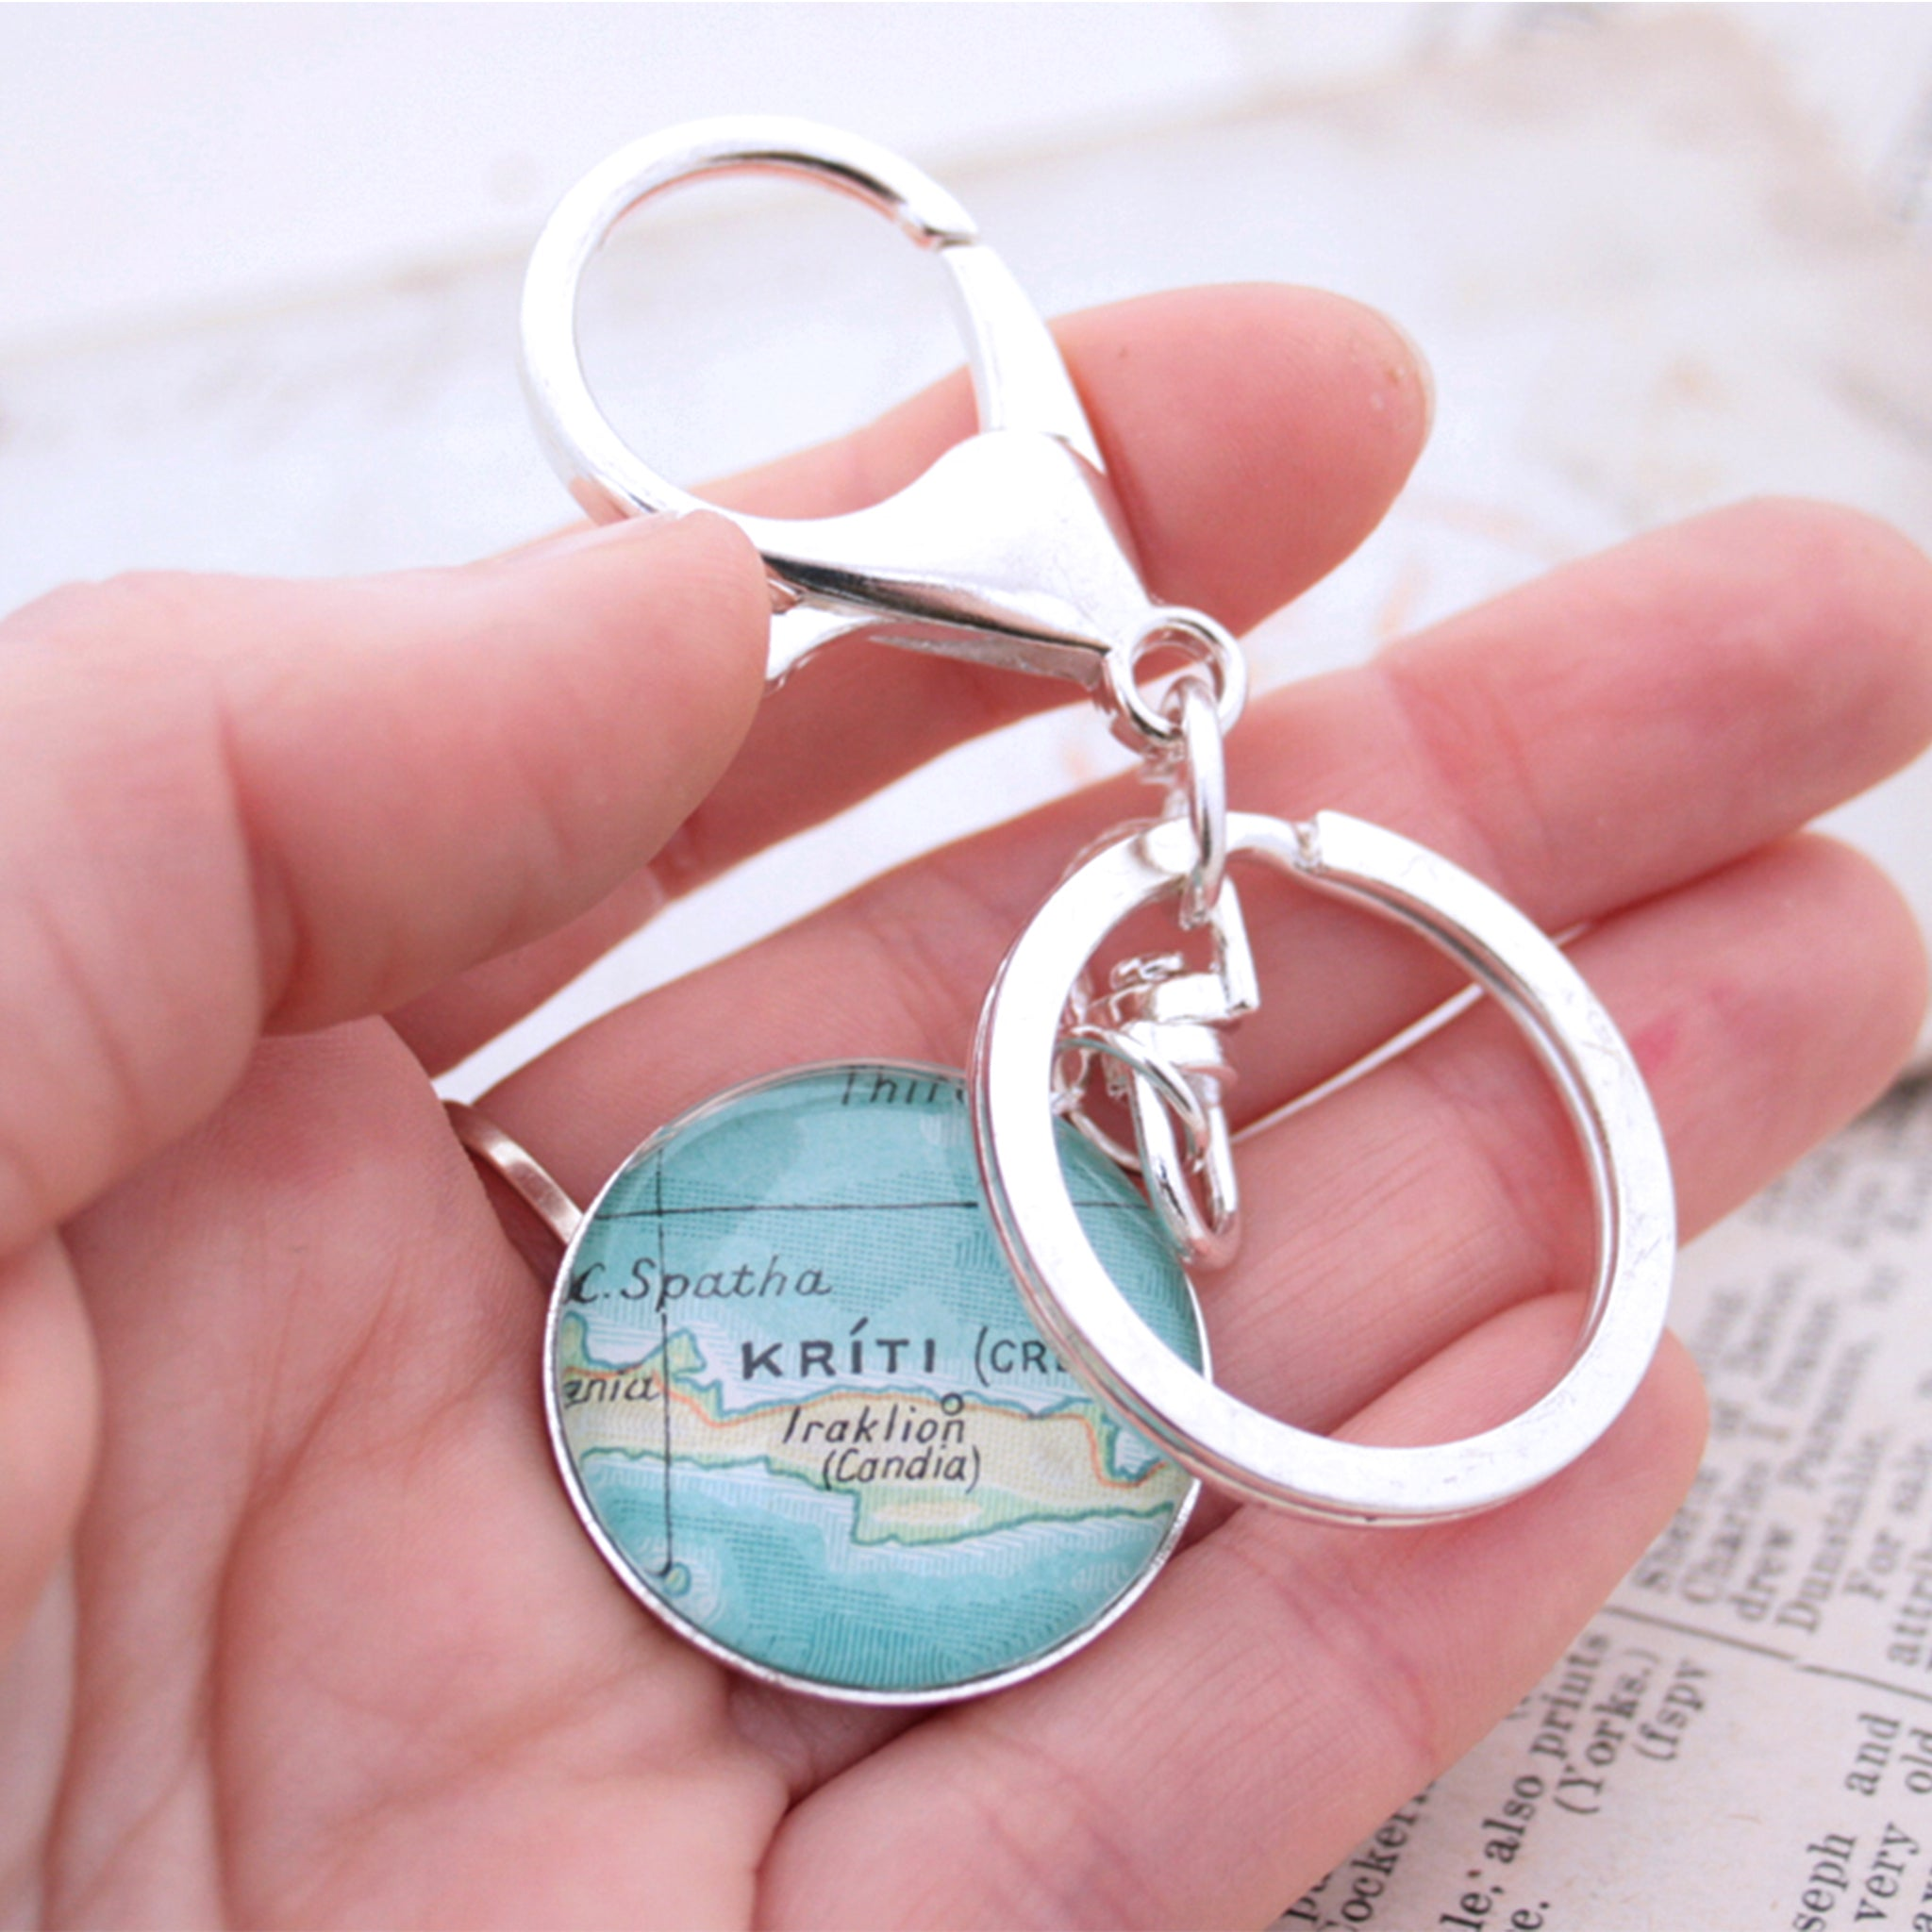 Hold in hand Personalised keyring in silver color featuring map of Kriti